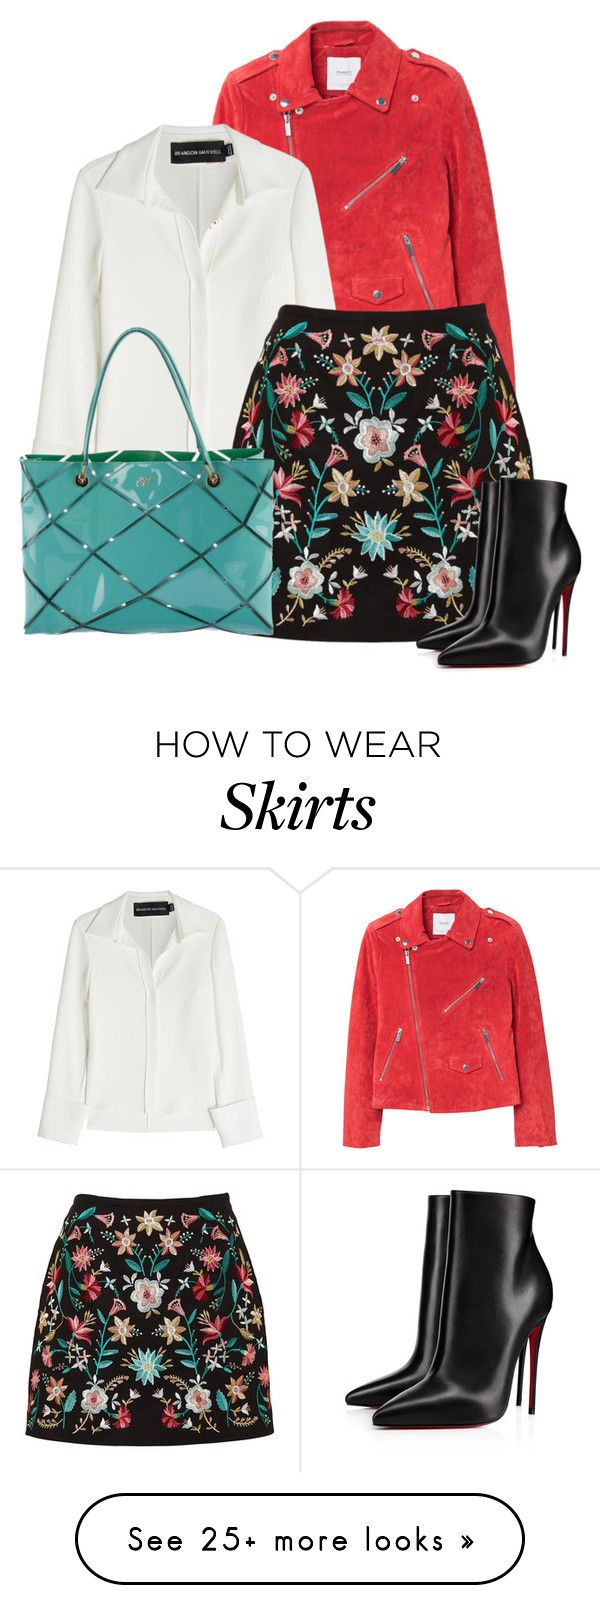 """""""EMBROIDERED MINI SKIRT"""" by oxigenio on Polyvore featuring MANGO, Brandon Maxwell, Roger Vivier and Christian Louboutin"""